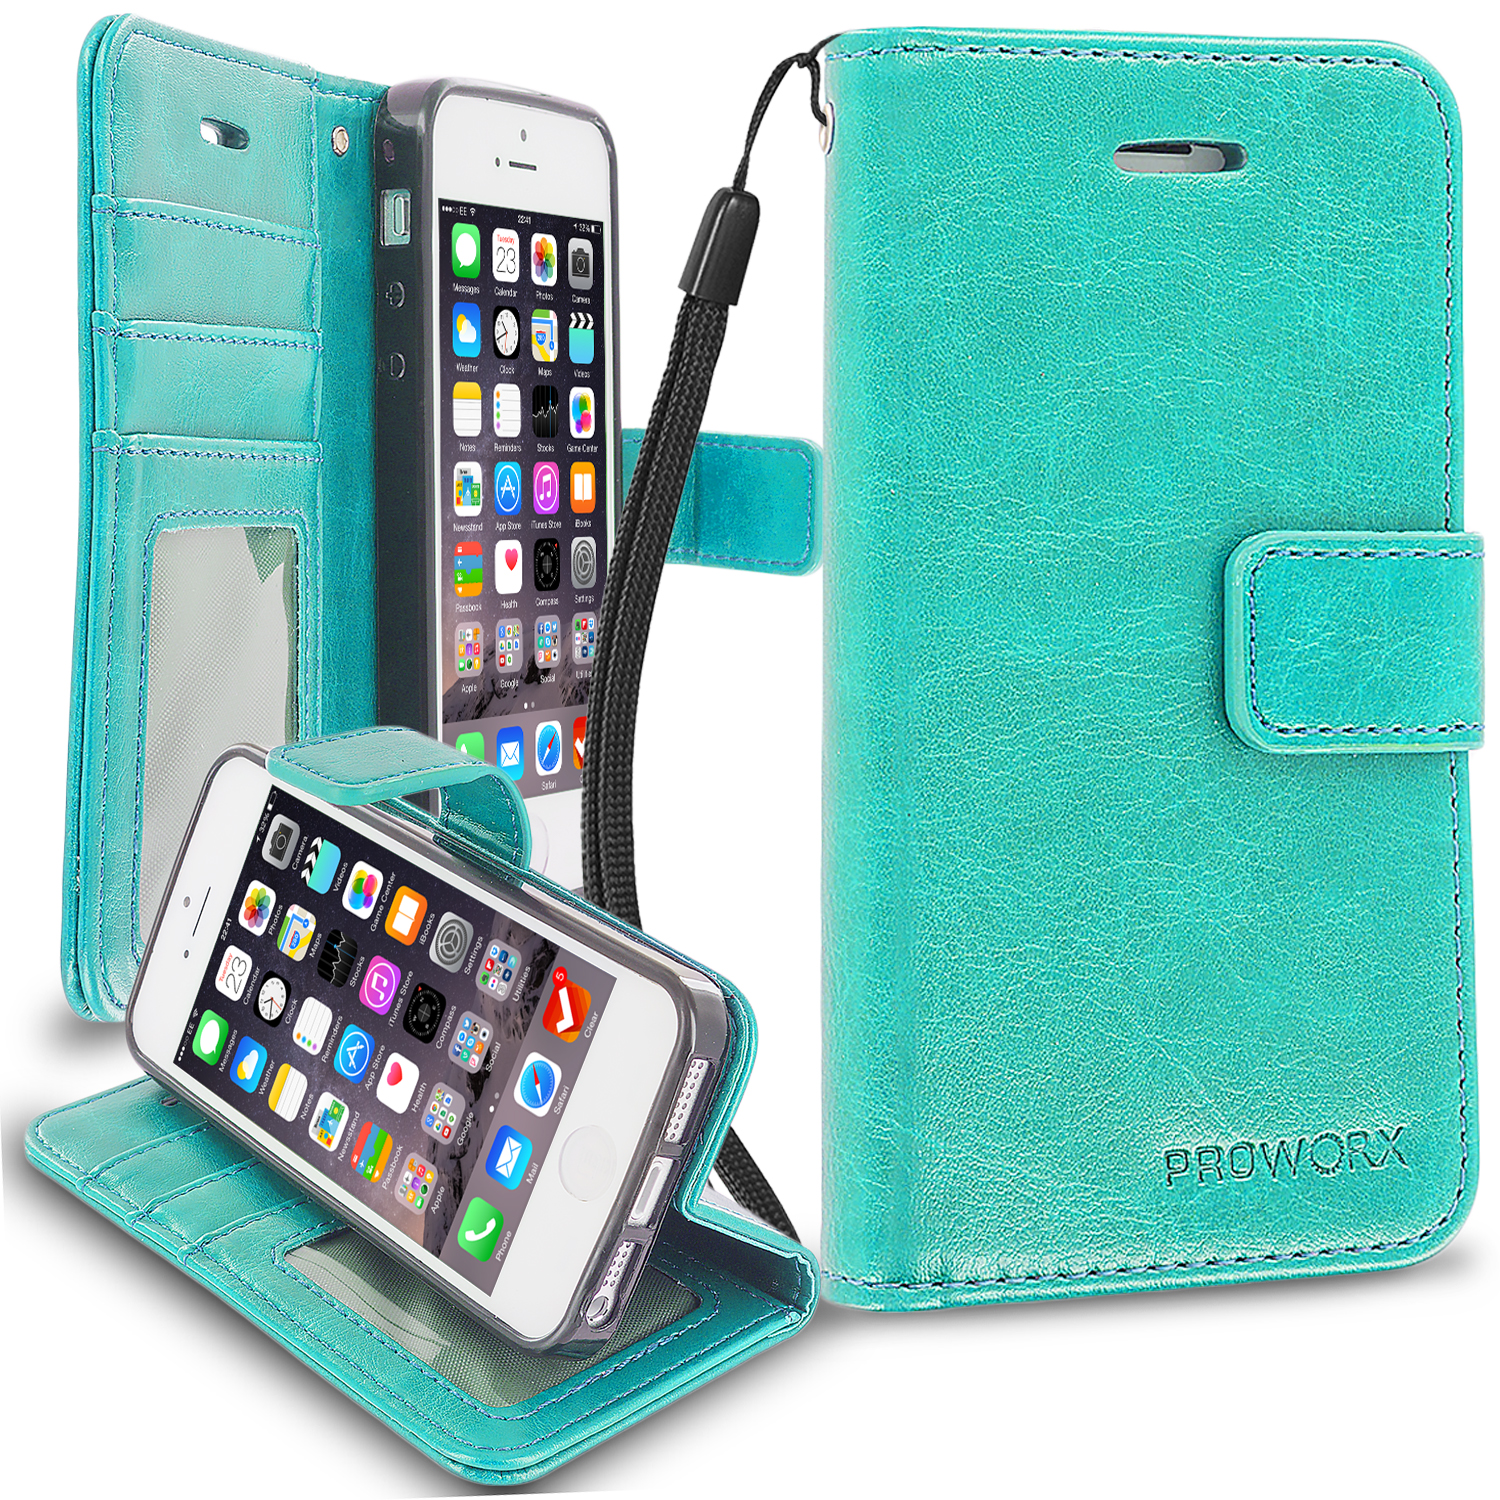 Apple iPhone 5/5S/SE Mint Green ProWorx Wallet Case Luxury PU Leather Case Cover With Card Slots & Stand